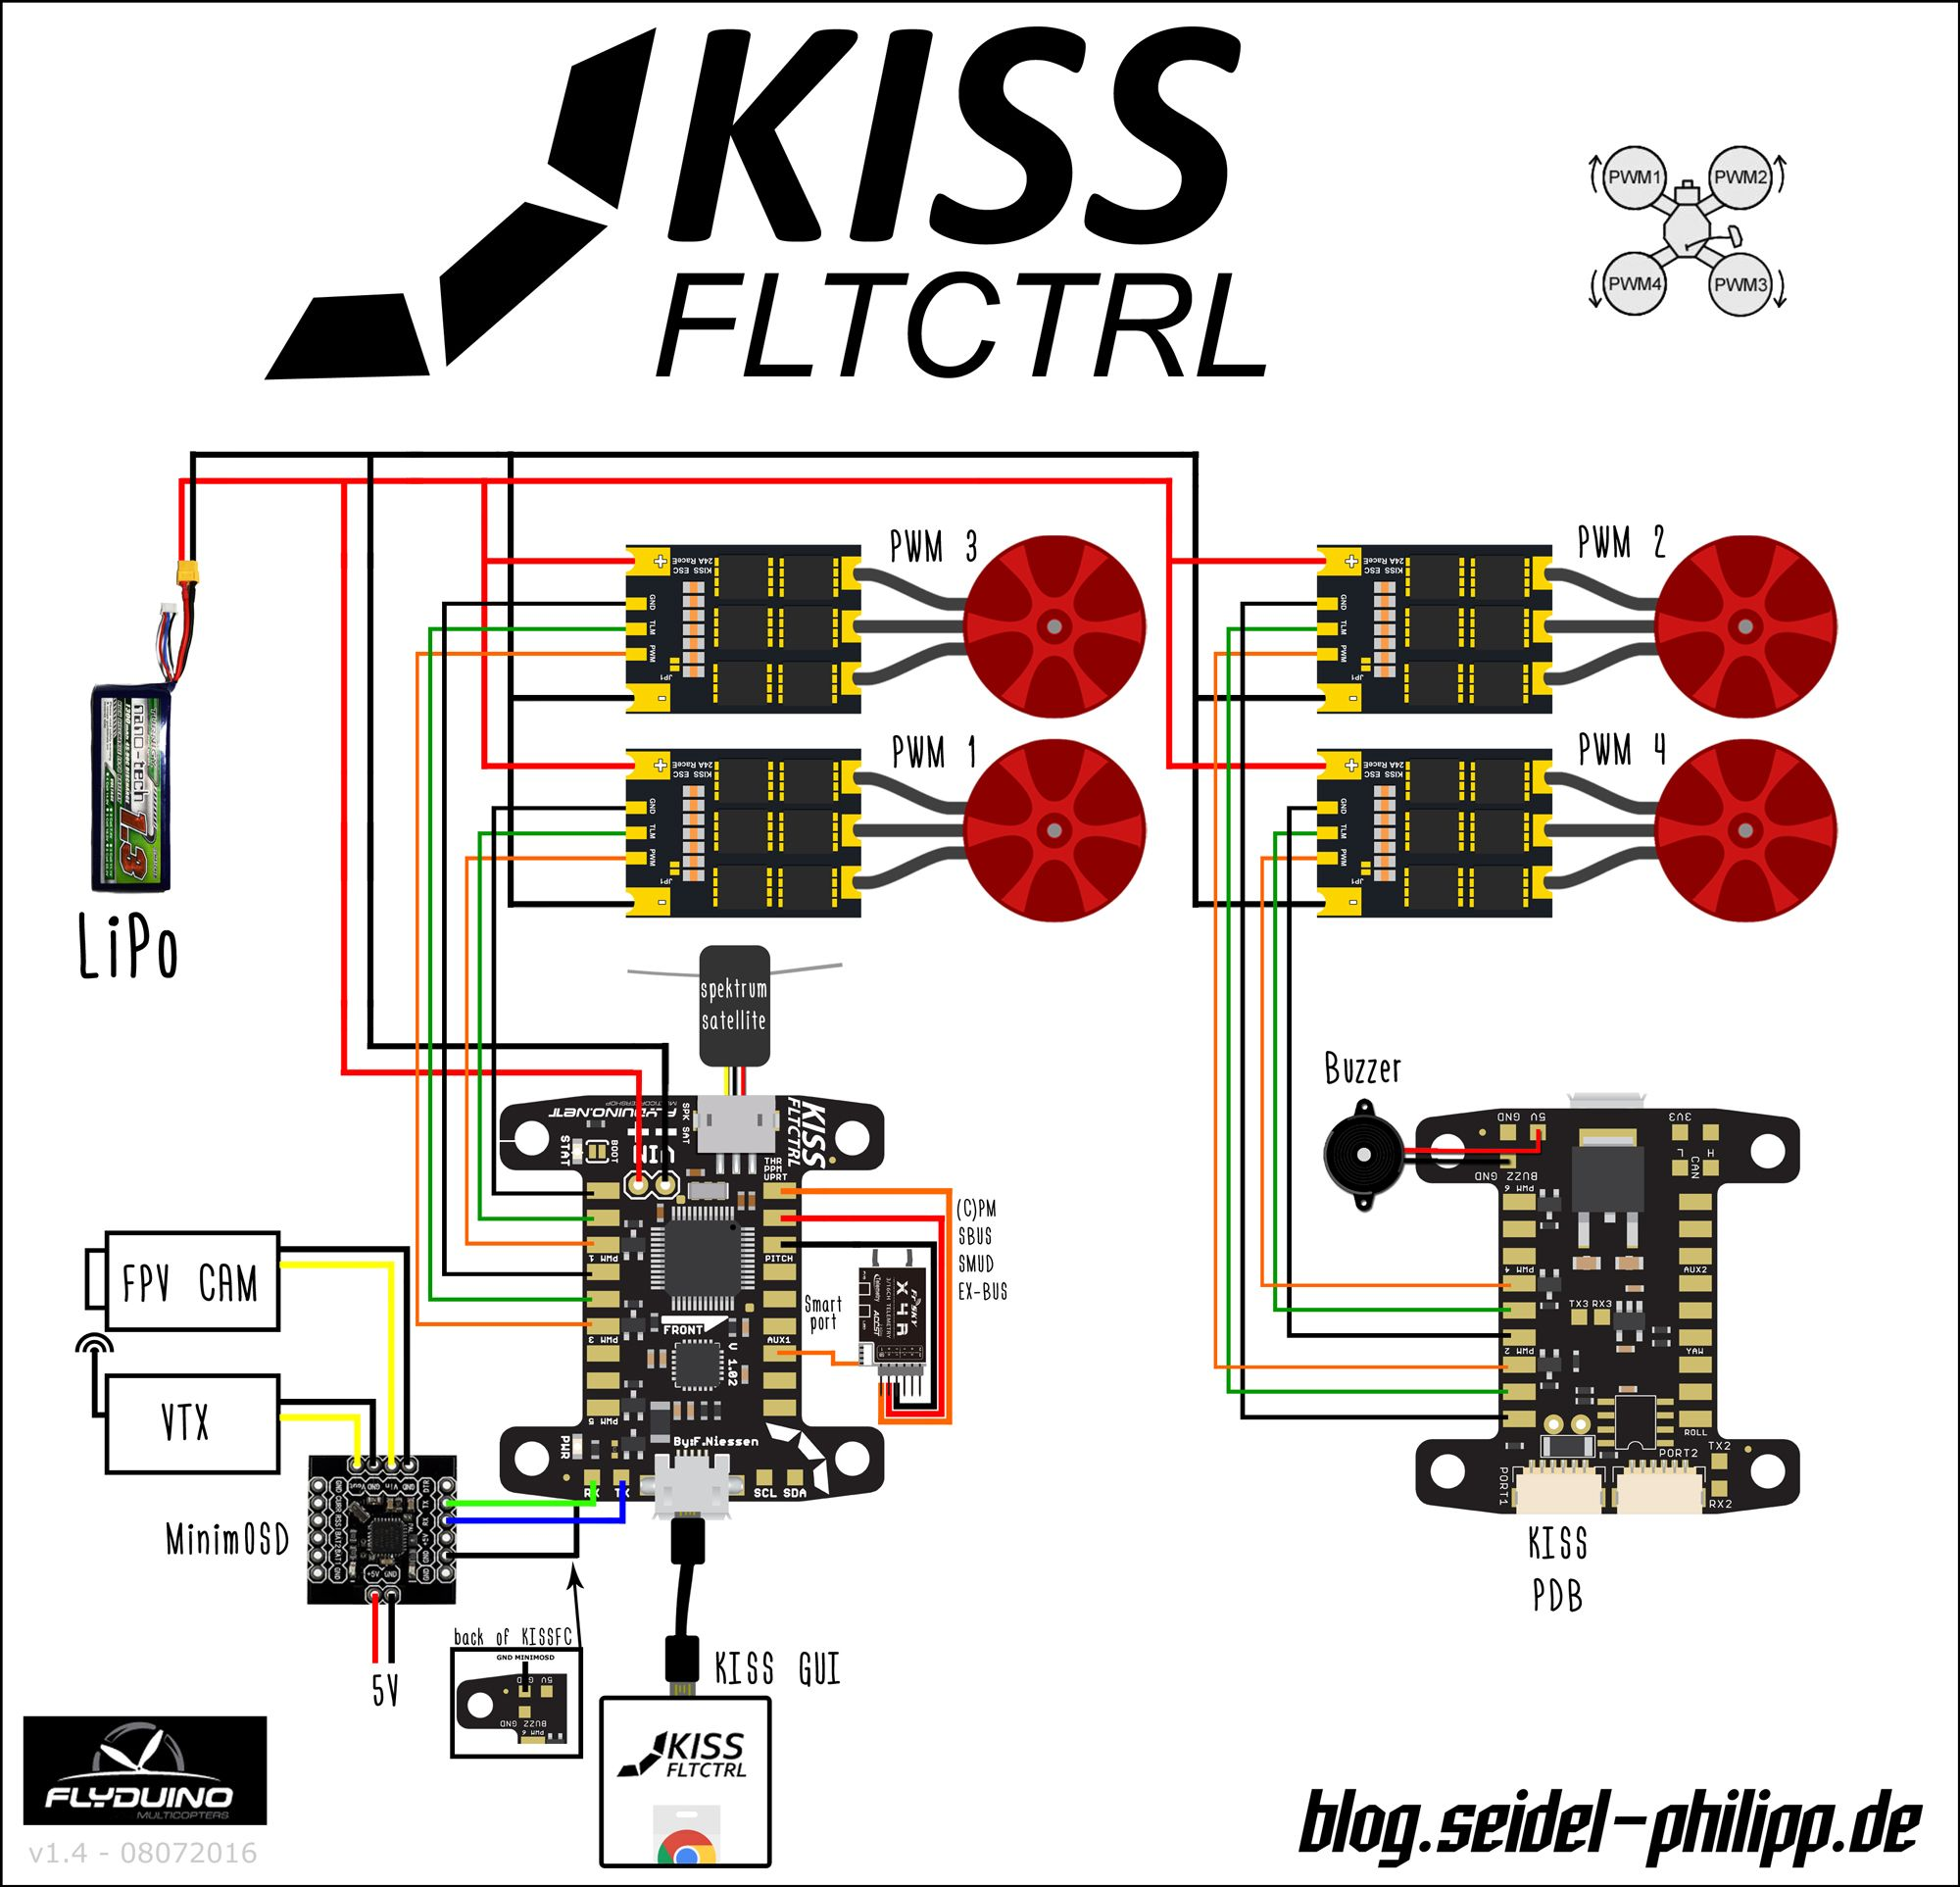 f1907540ae1f7379ead1b0bceca0ceae hubsan h501s x4 brushless fpv ready to fly quadcopter fpv drone quadcopter wiring schematic at bayanpartner.co